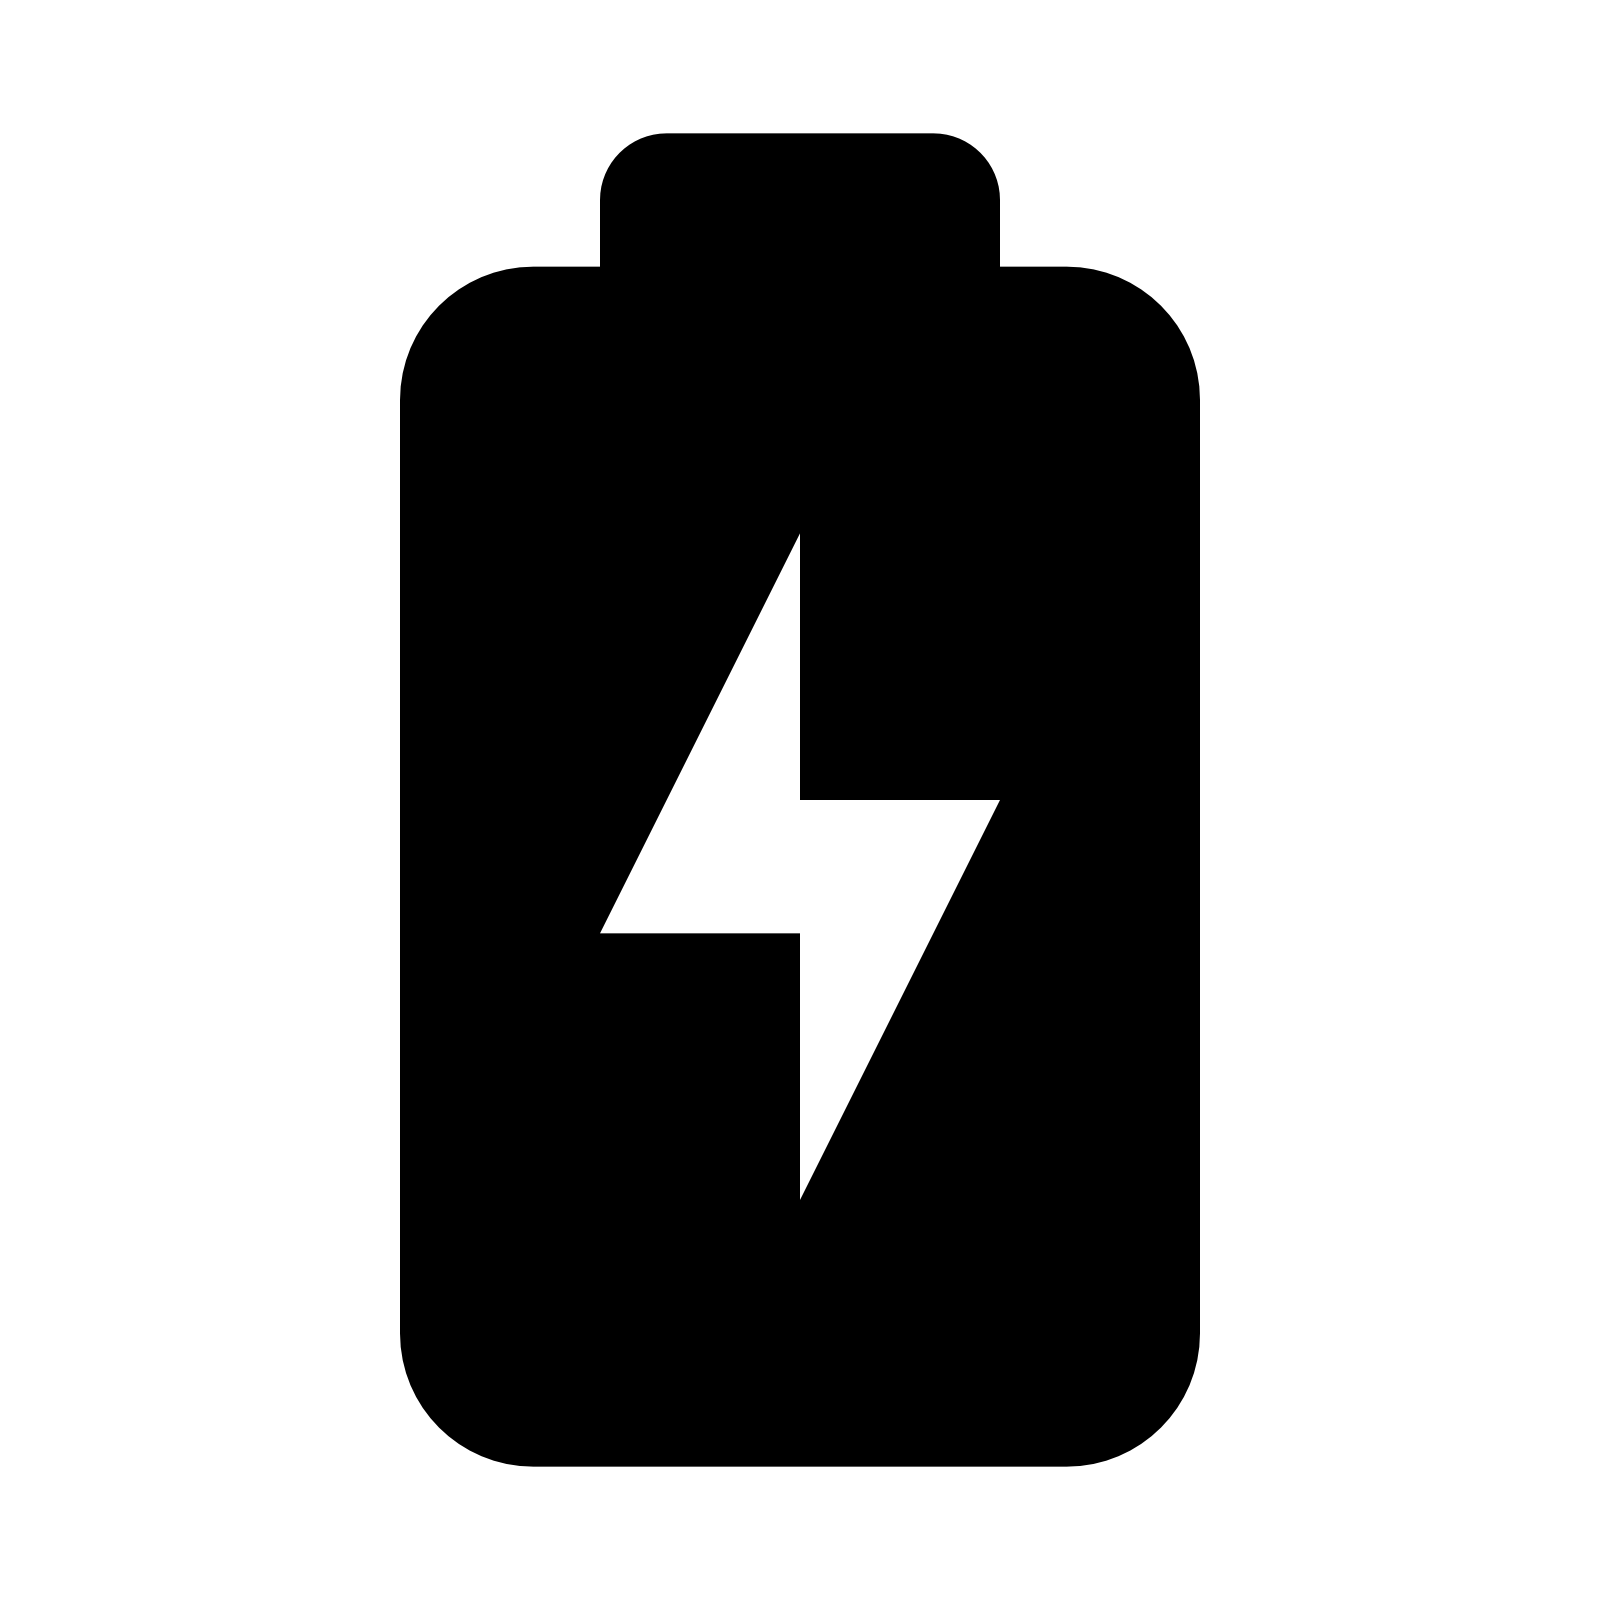 Battery Clipart Free.